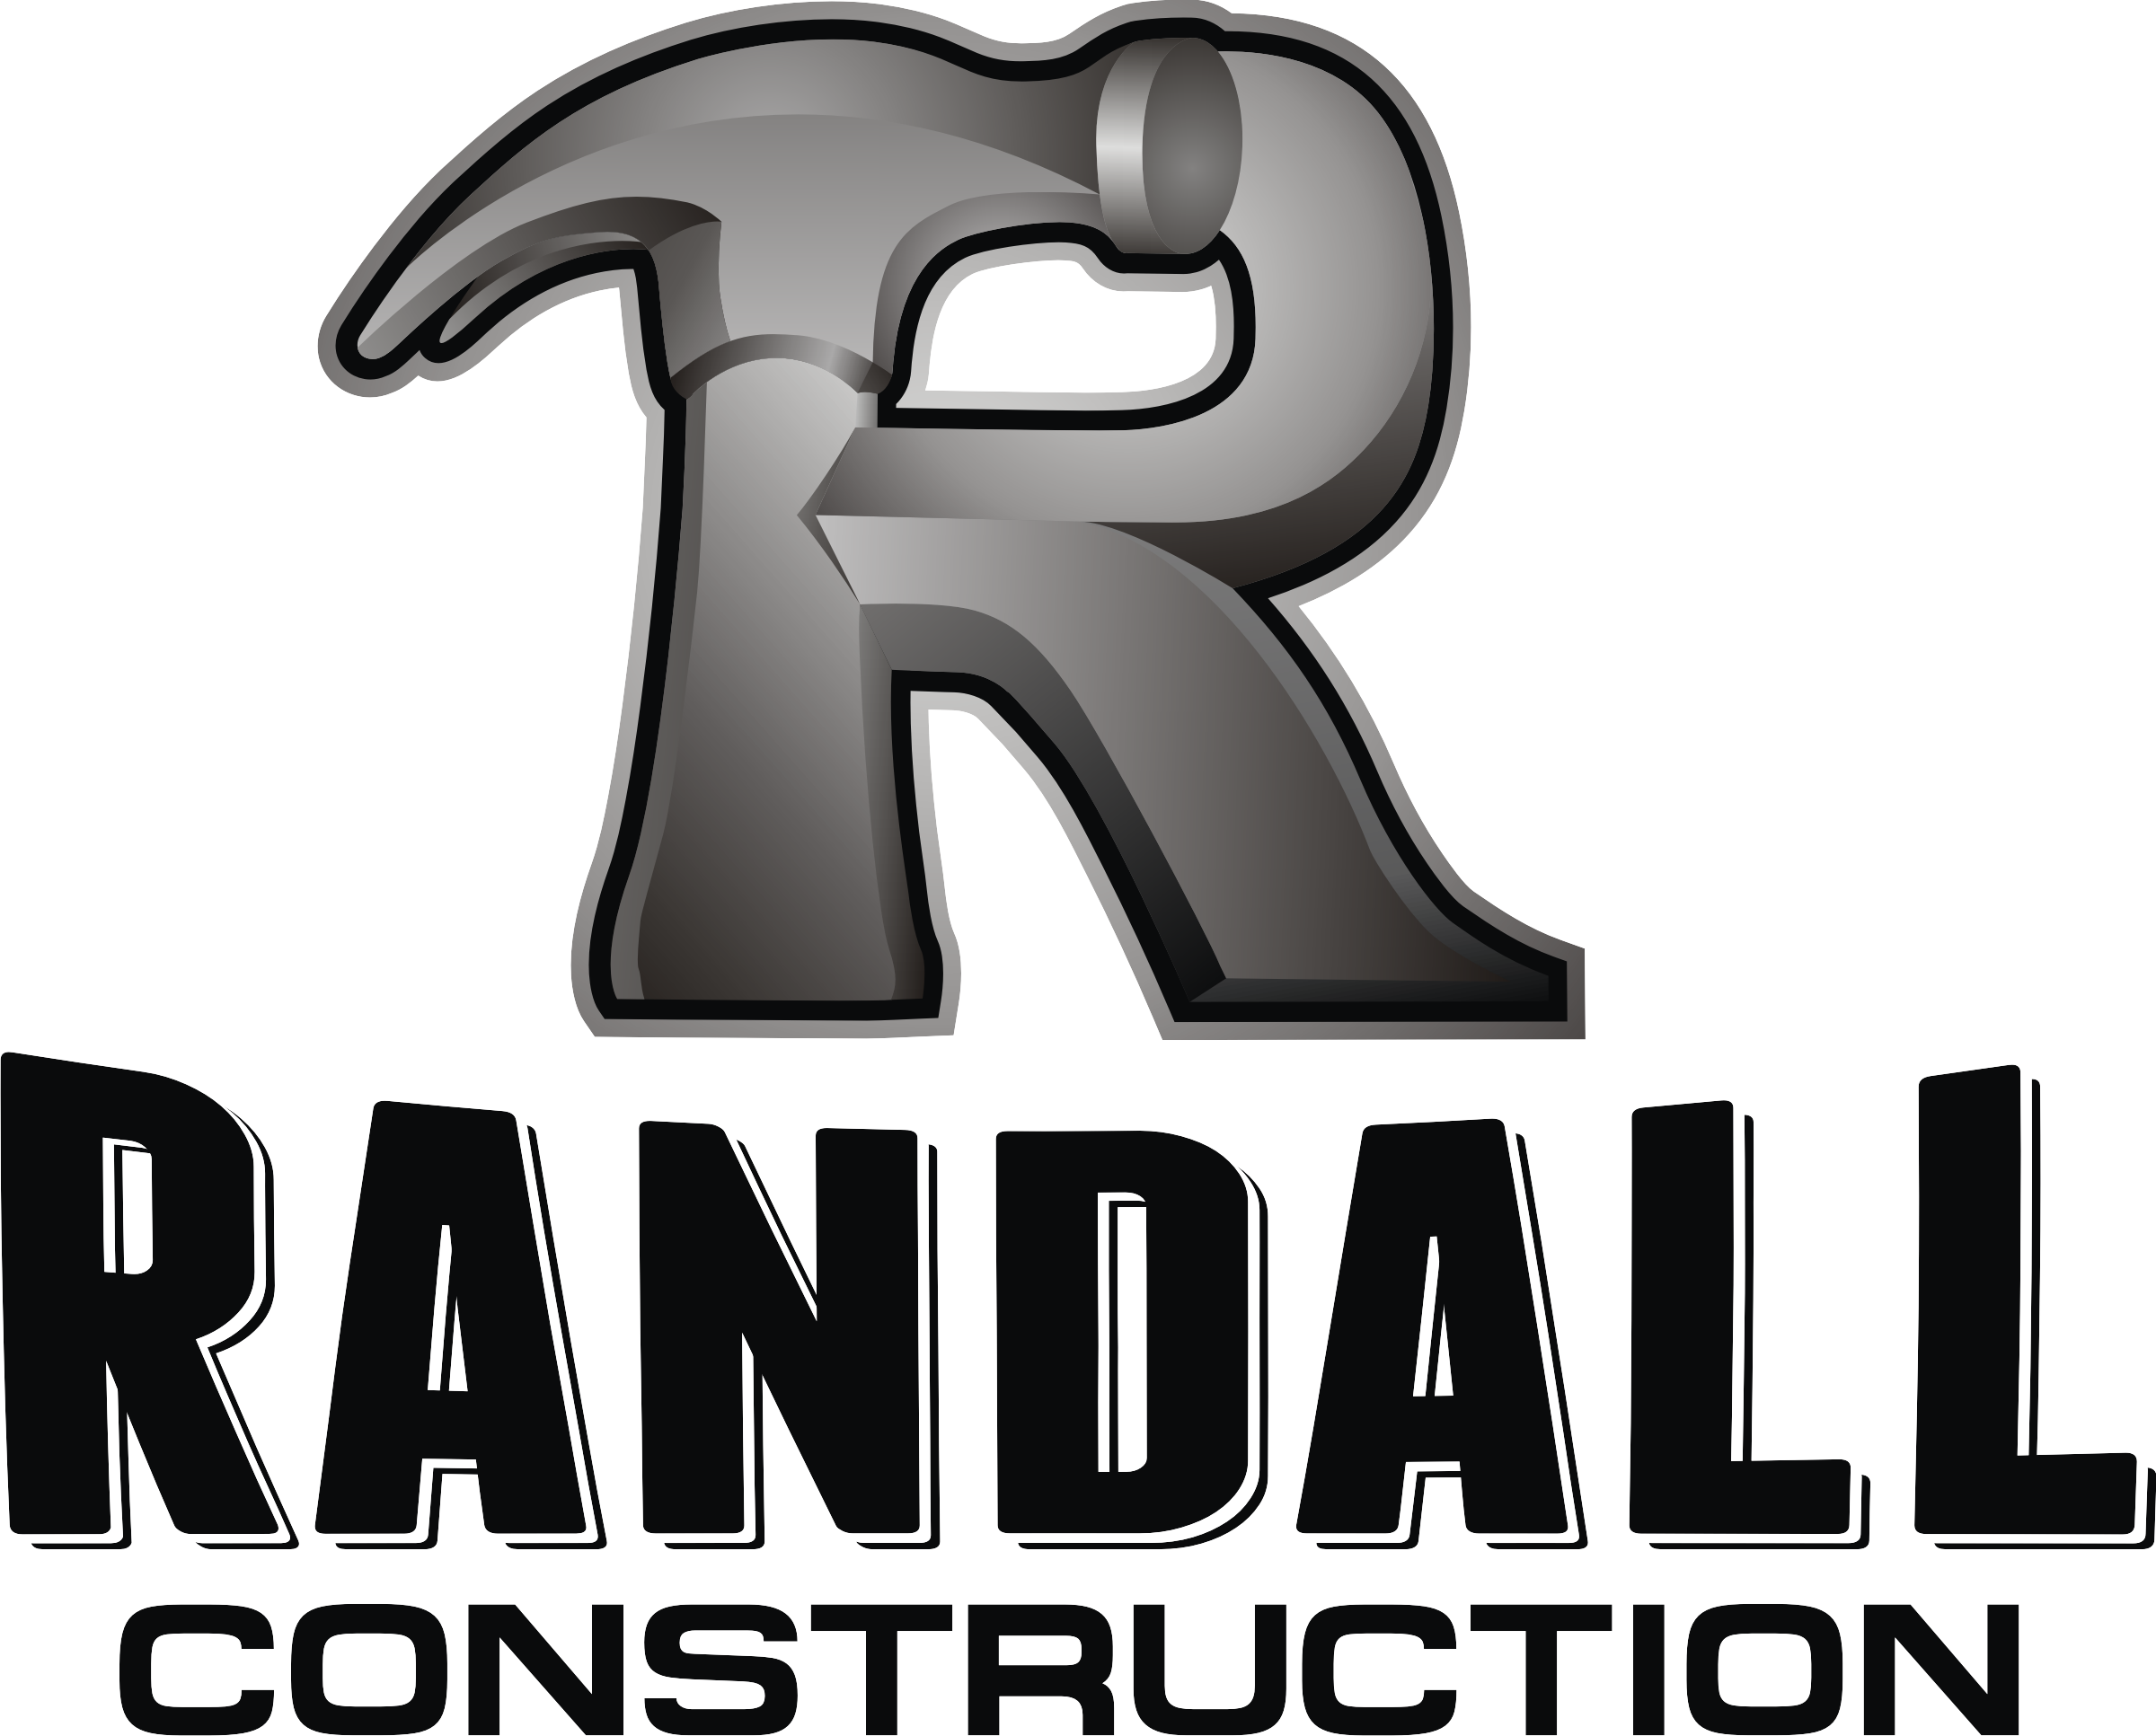 Create a wicked cool construction logo for Randall Construction